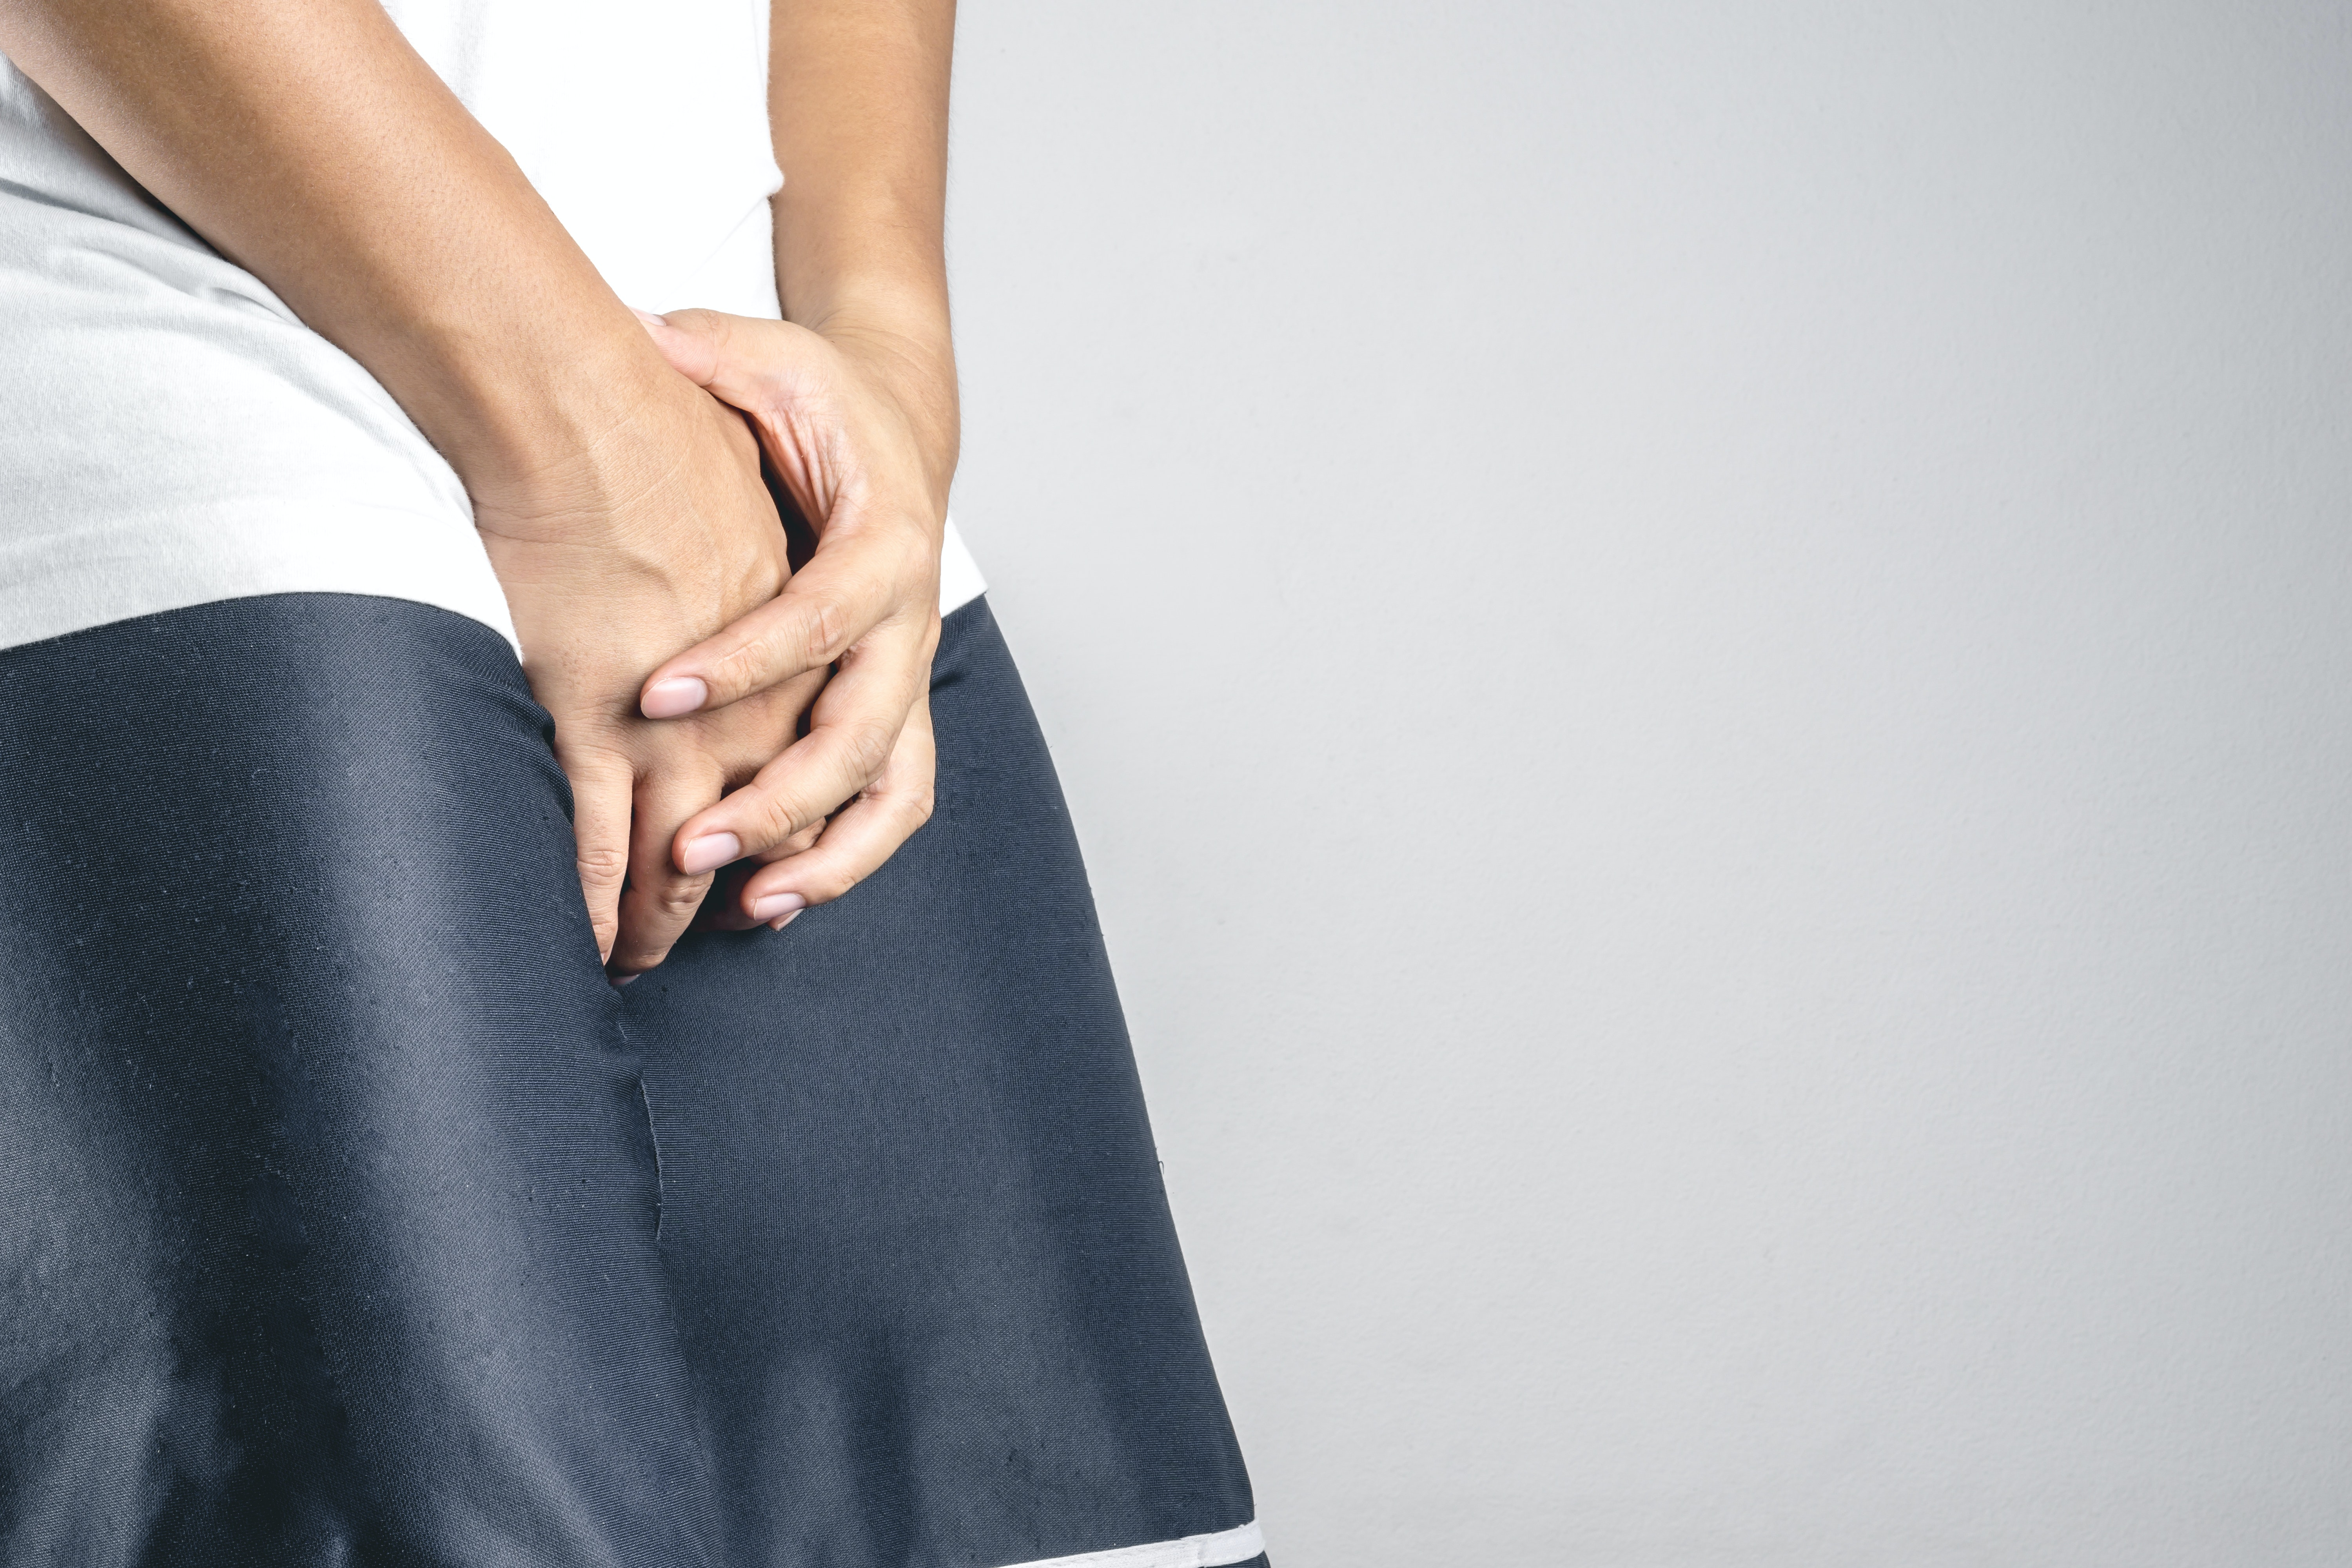 An image depicting a person suffering from penis pain symptoms